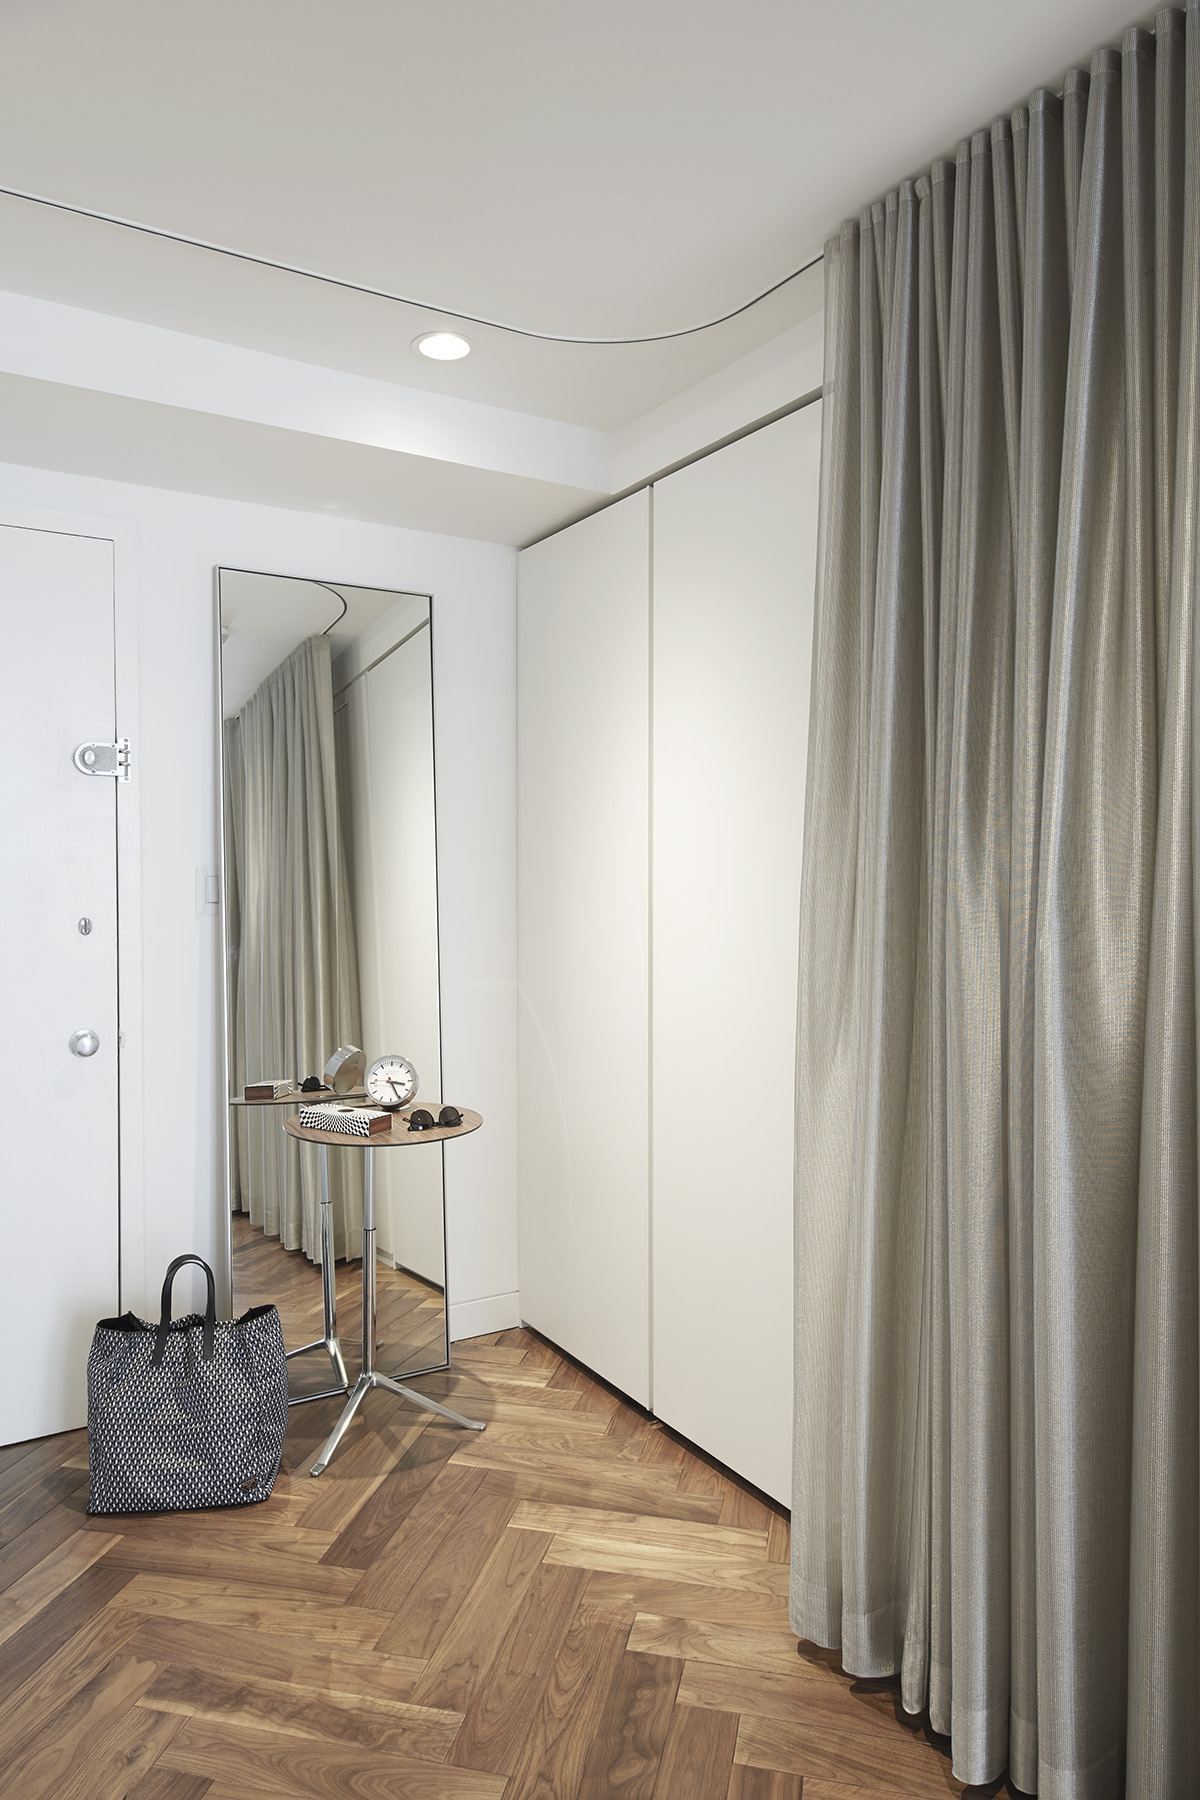 STADT Architecture, Gramercy Apartment, Little Friend, Curtain